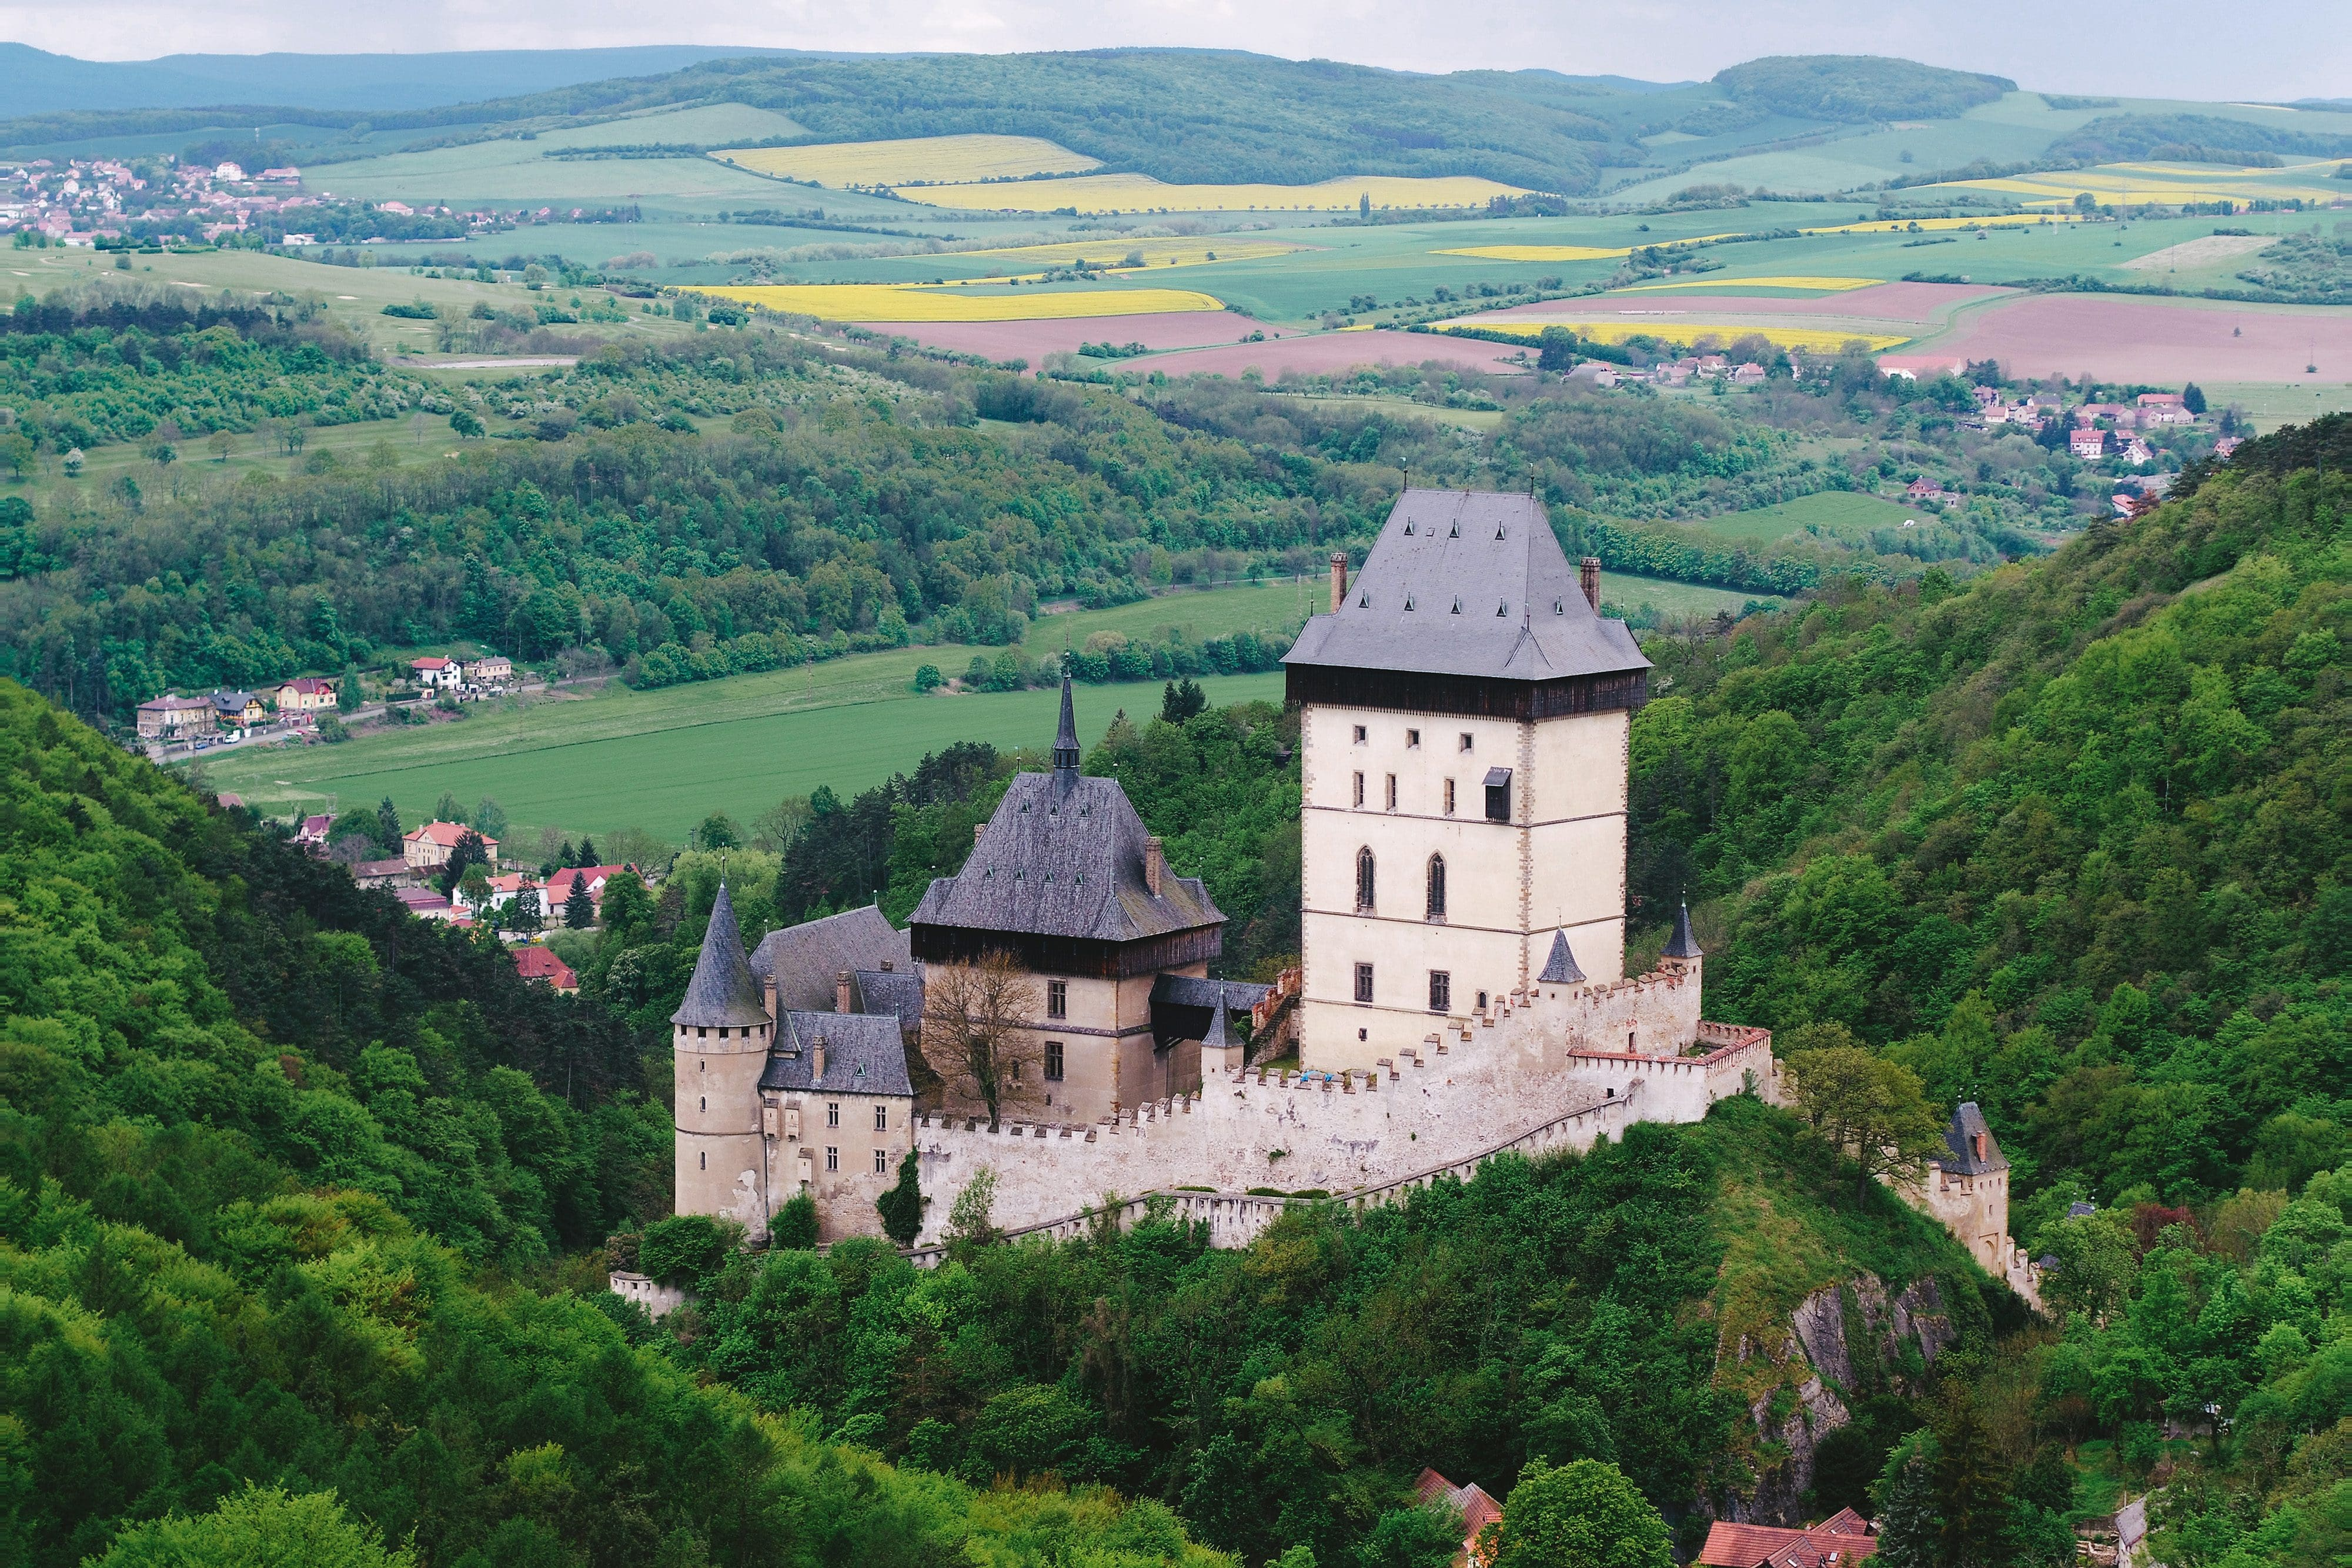 The towers and battlements of Karlštejn Castle peek out above the green landscape